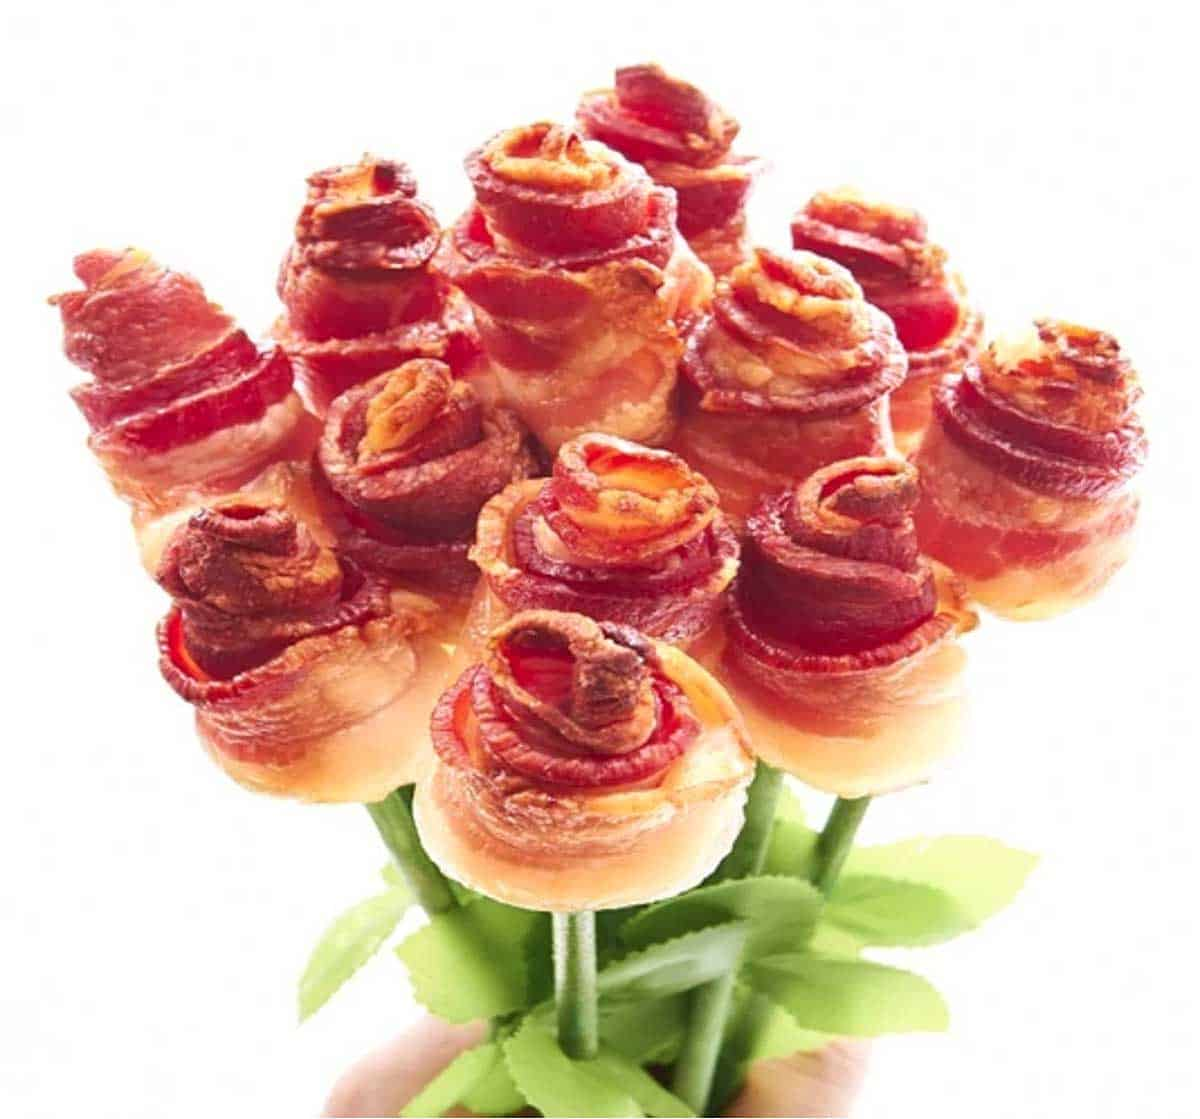 A bouquet with 12 roses, each made from a strip of bacon wound in a rose shape.